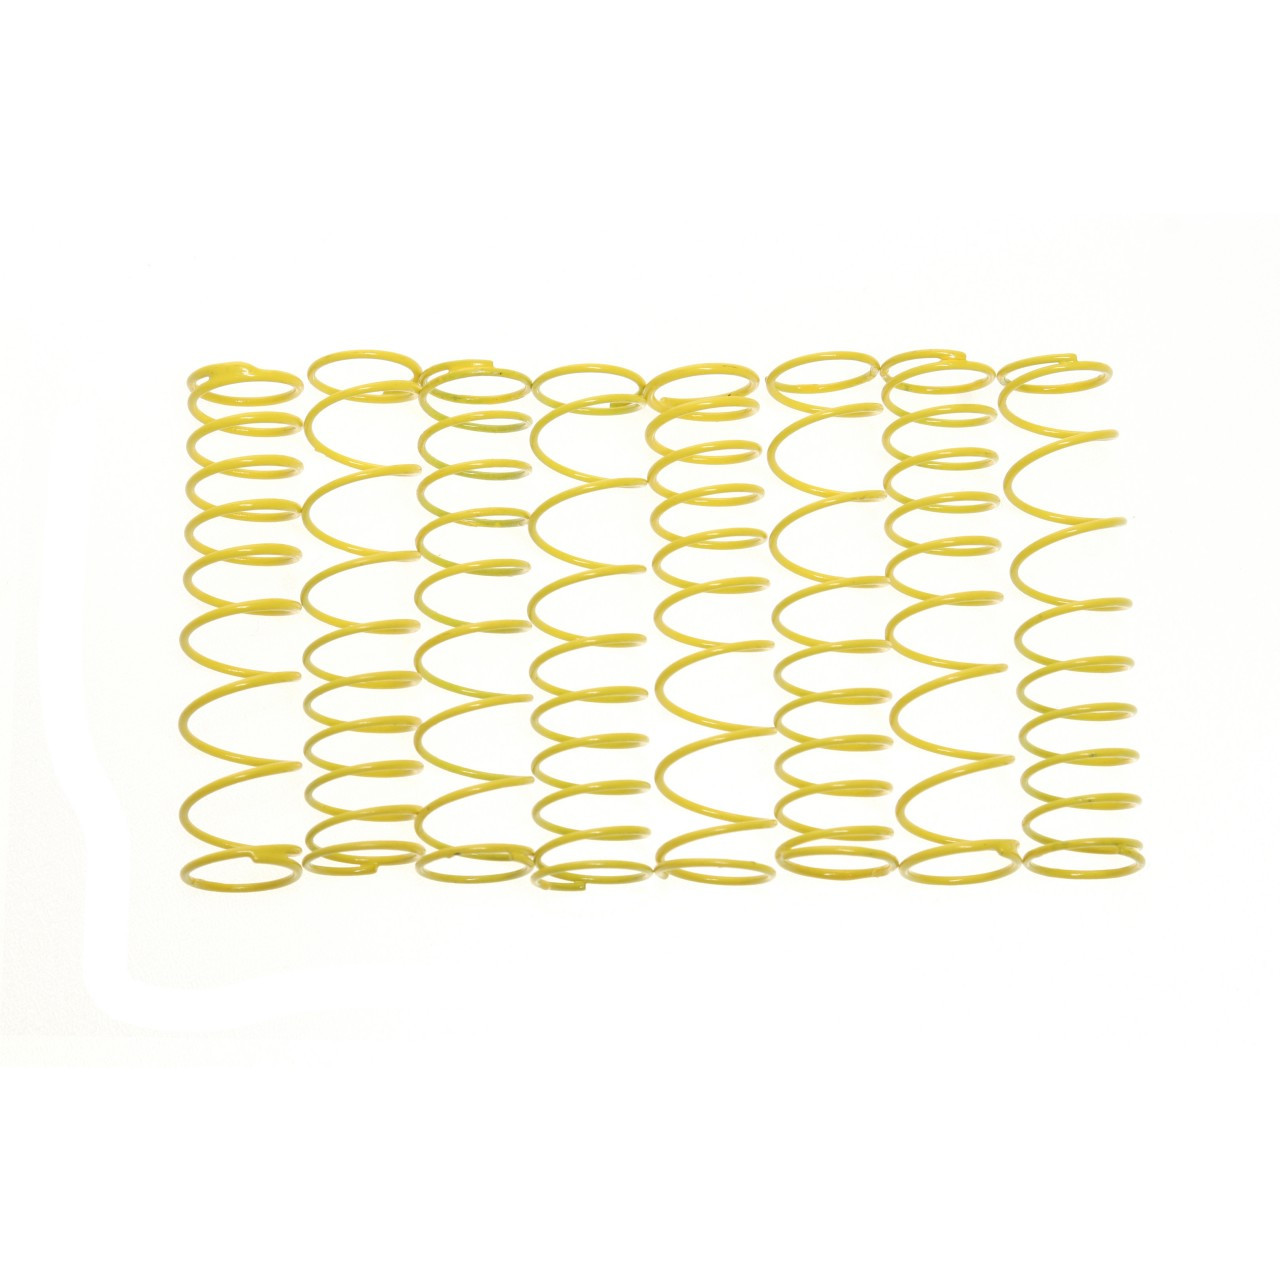 Traxxas T-MAXX E-MAXX Dual rate springs in Yellow. 8 Pack